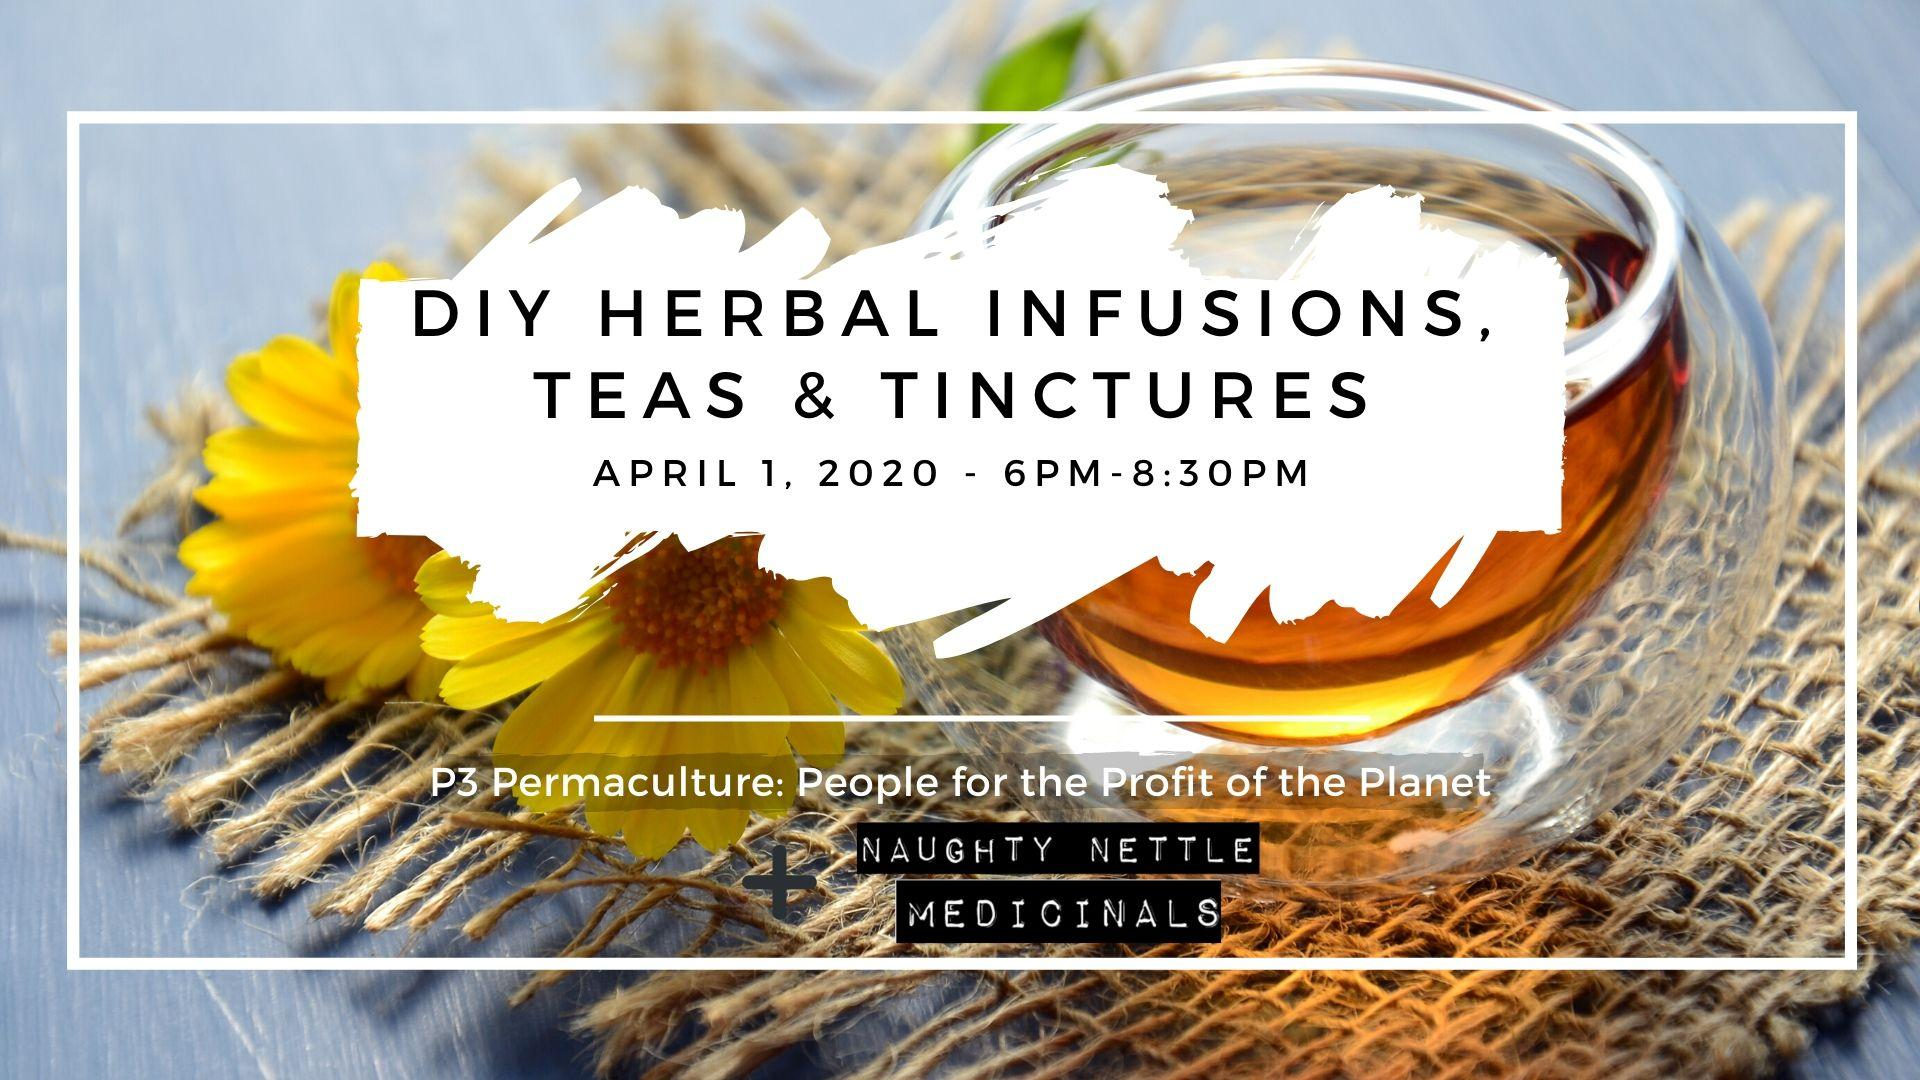 DIY Herbal Infusions, Teas & Tinctures